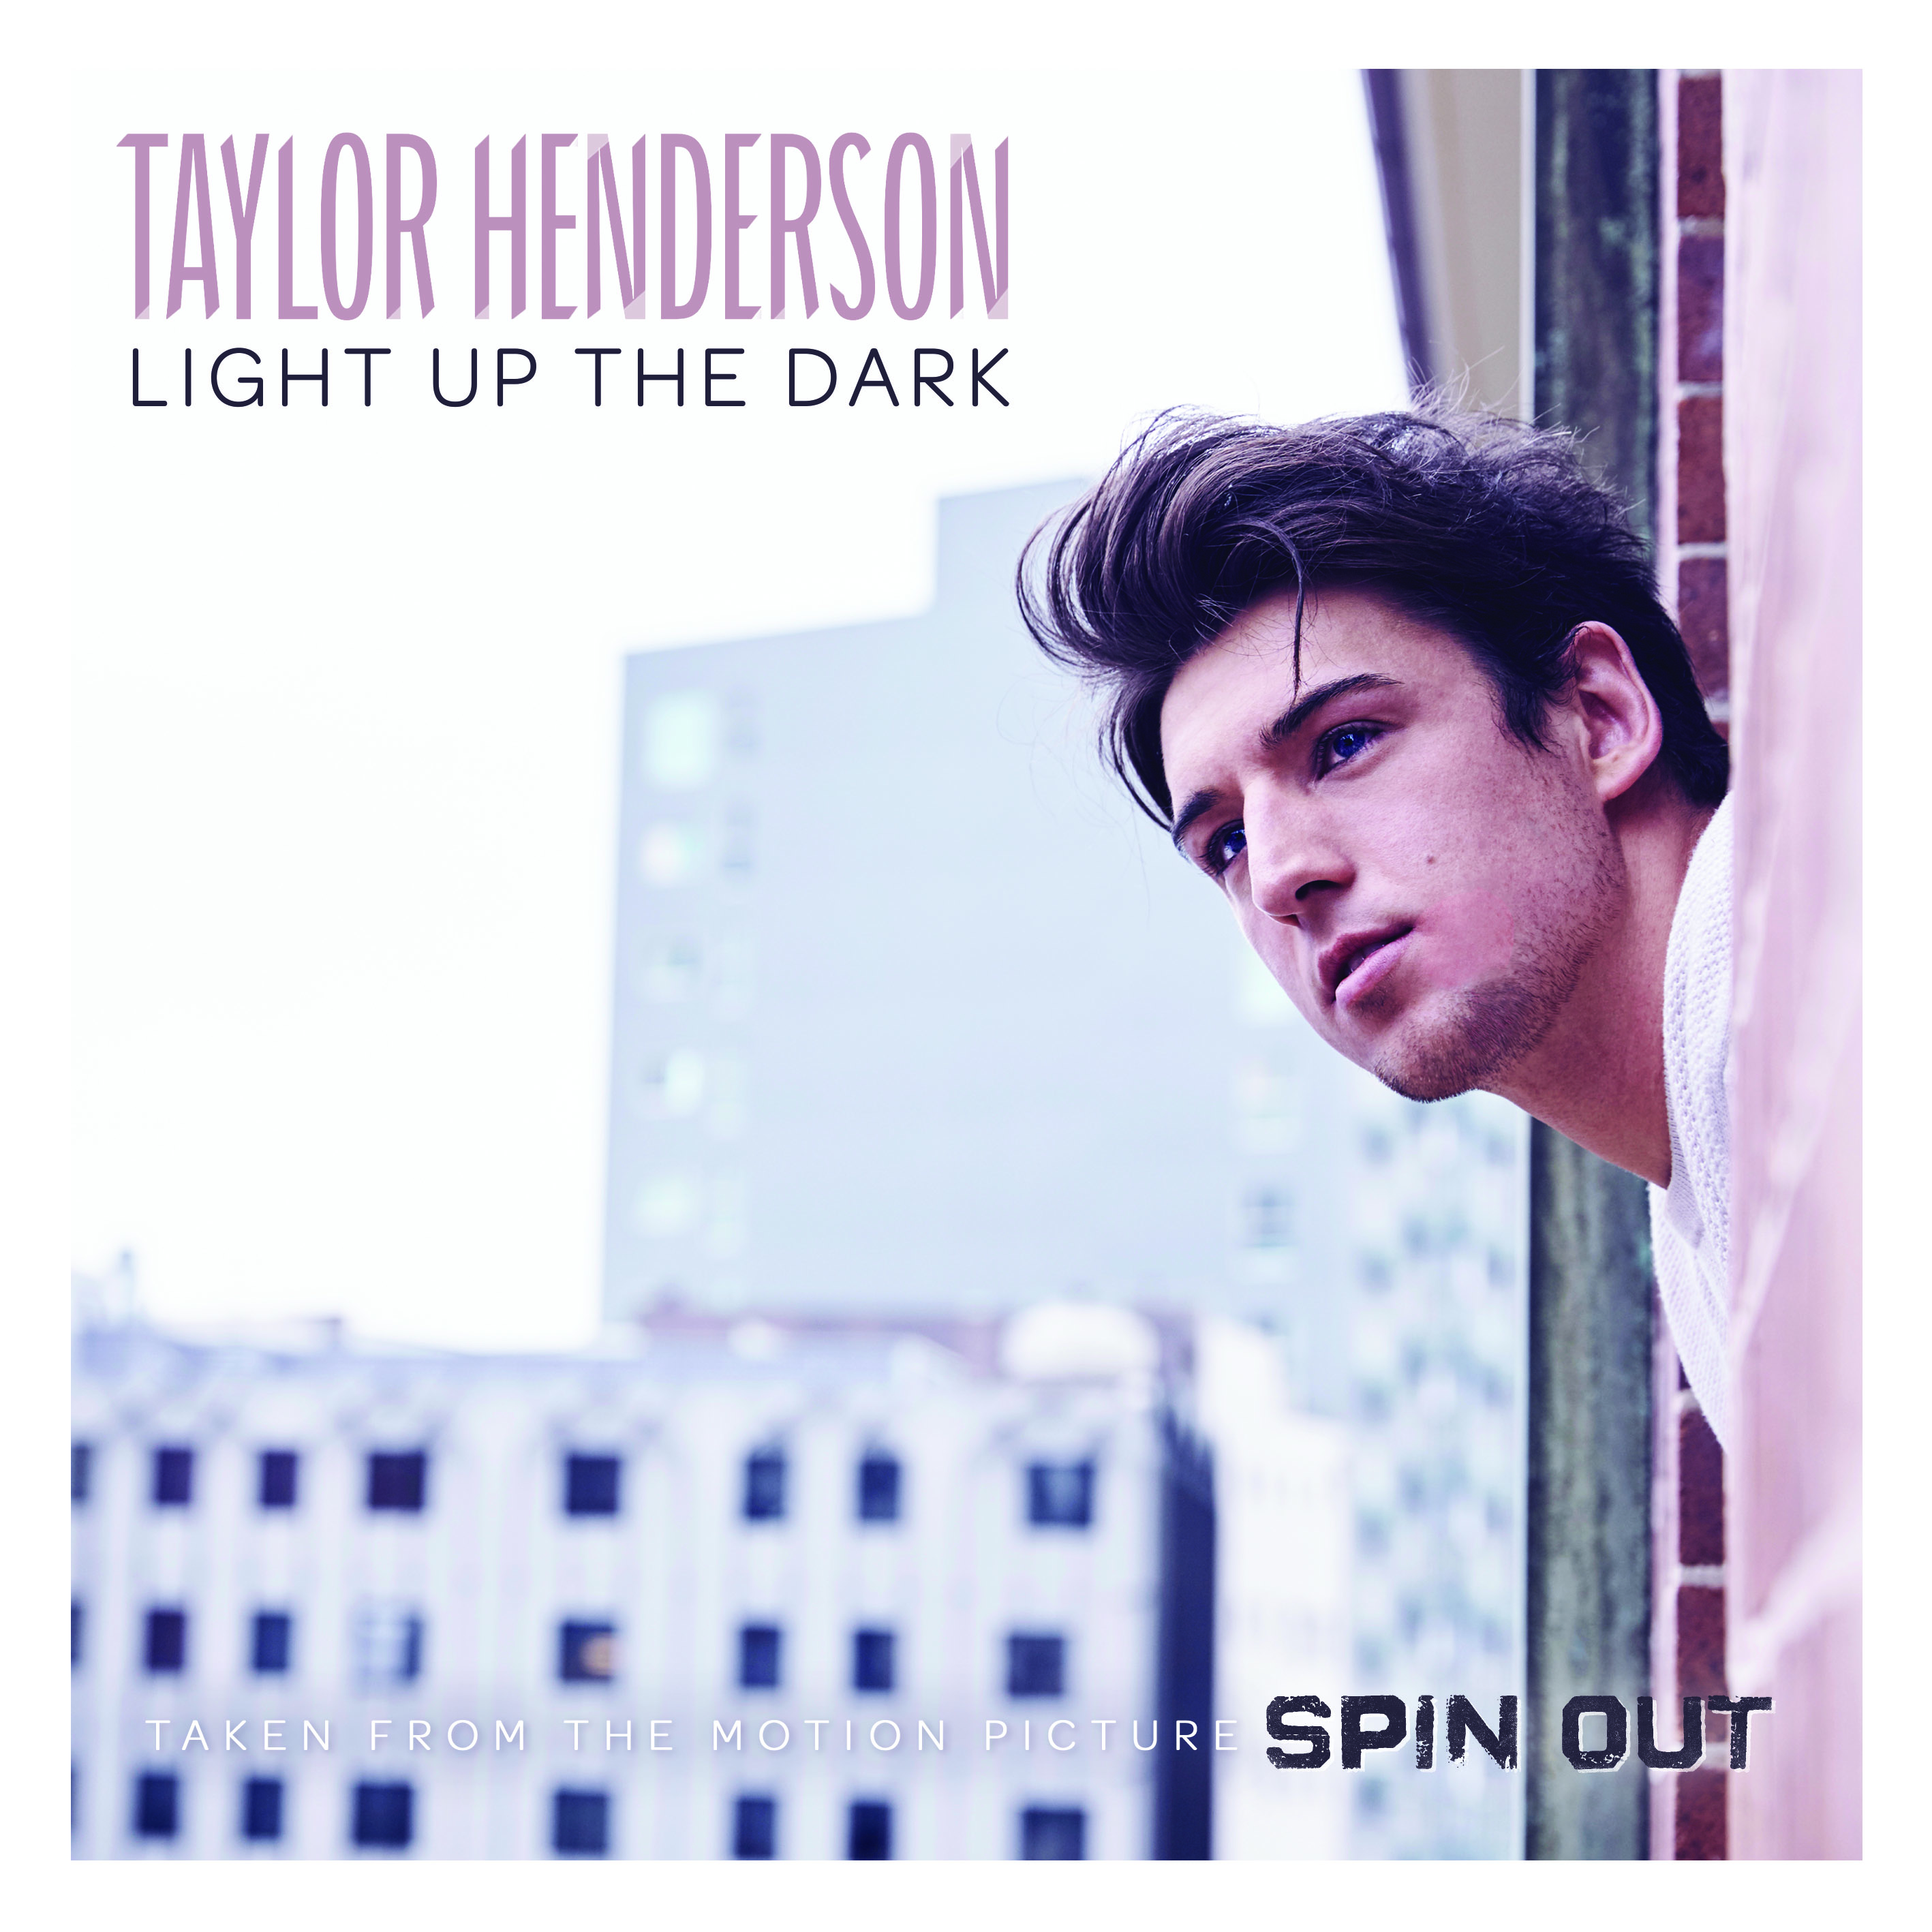 taylor-henderson_light-up-the-dark_single_l5